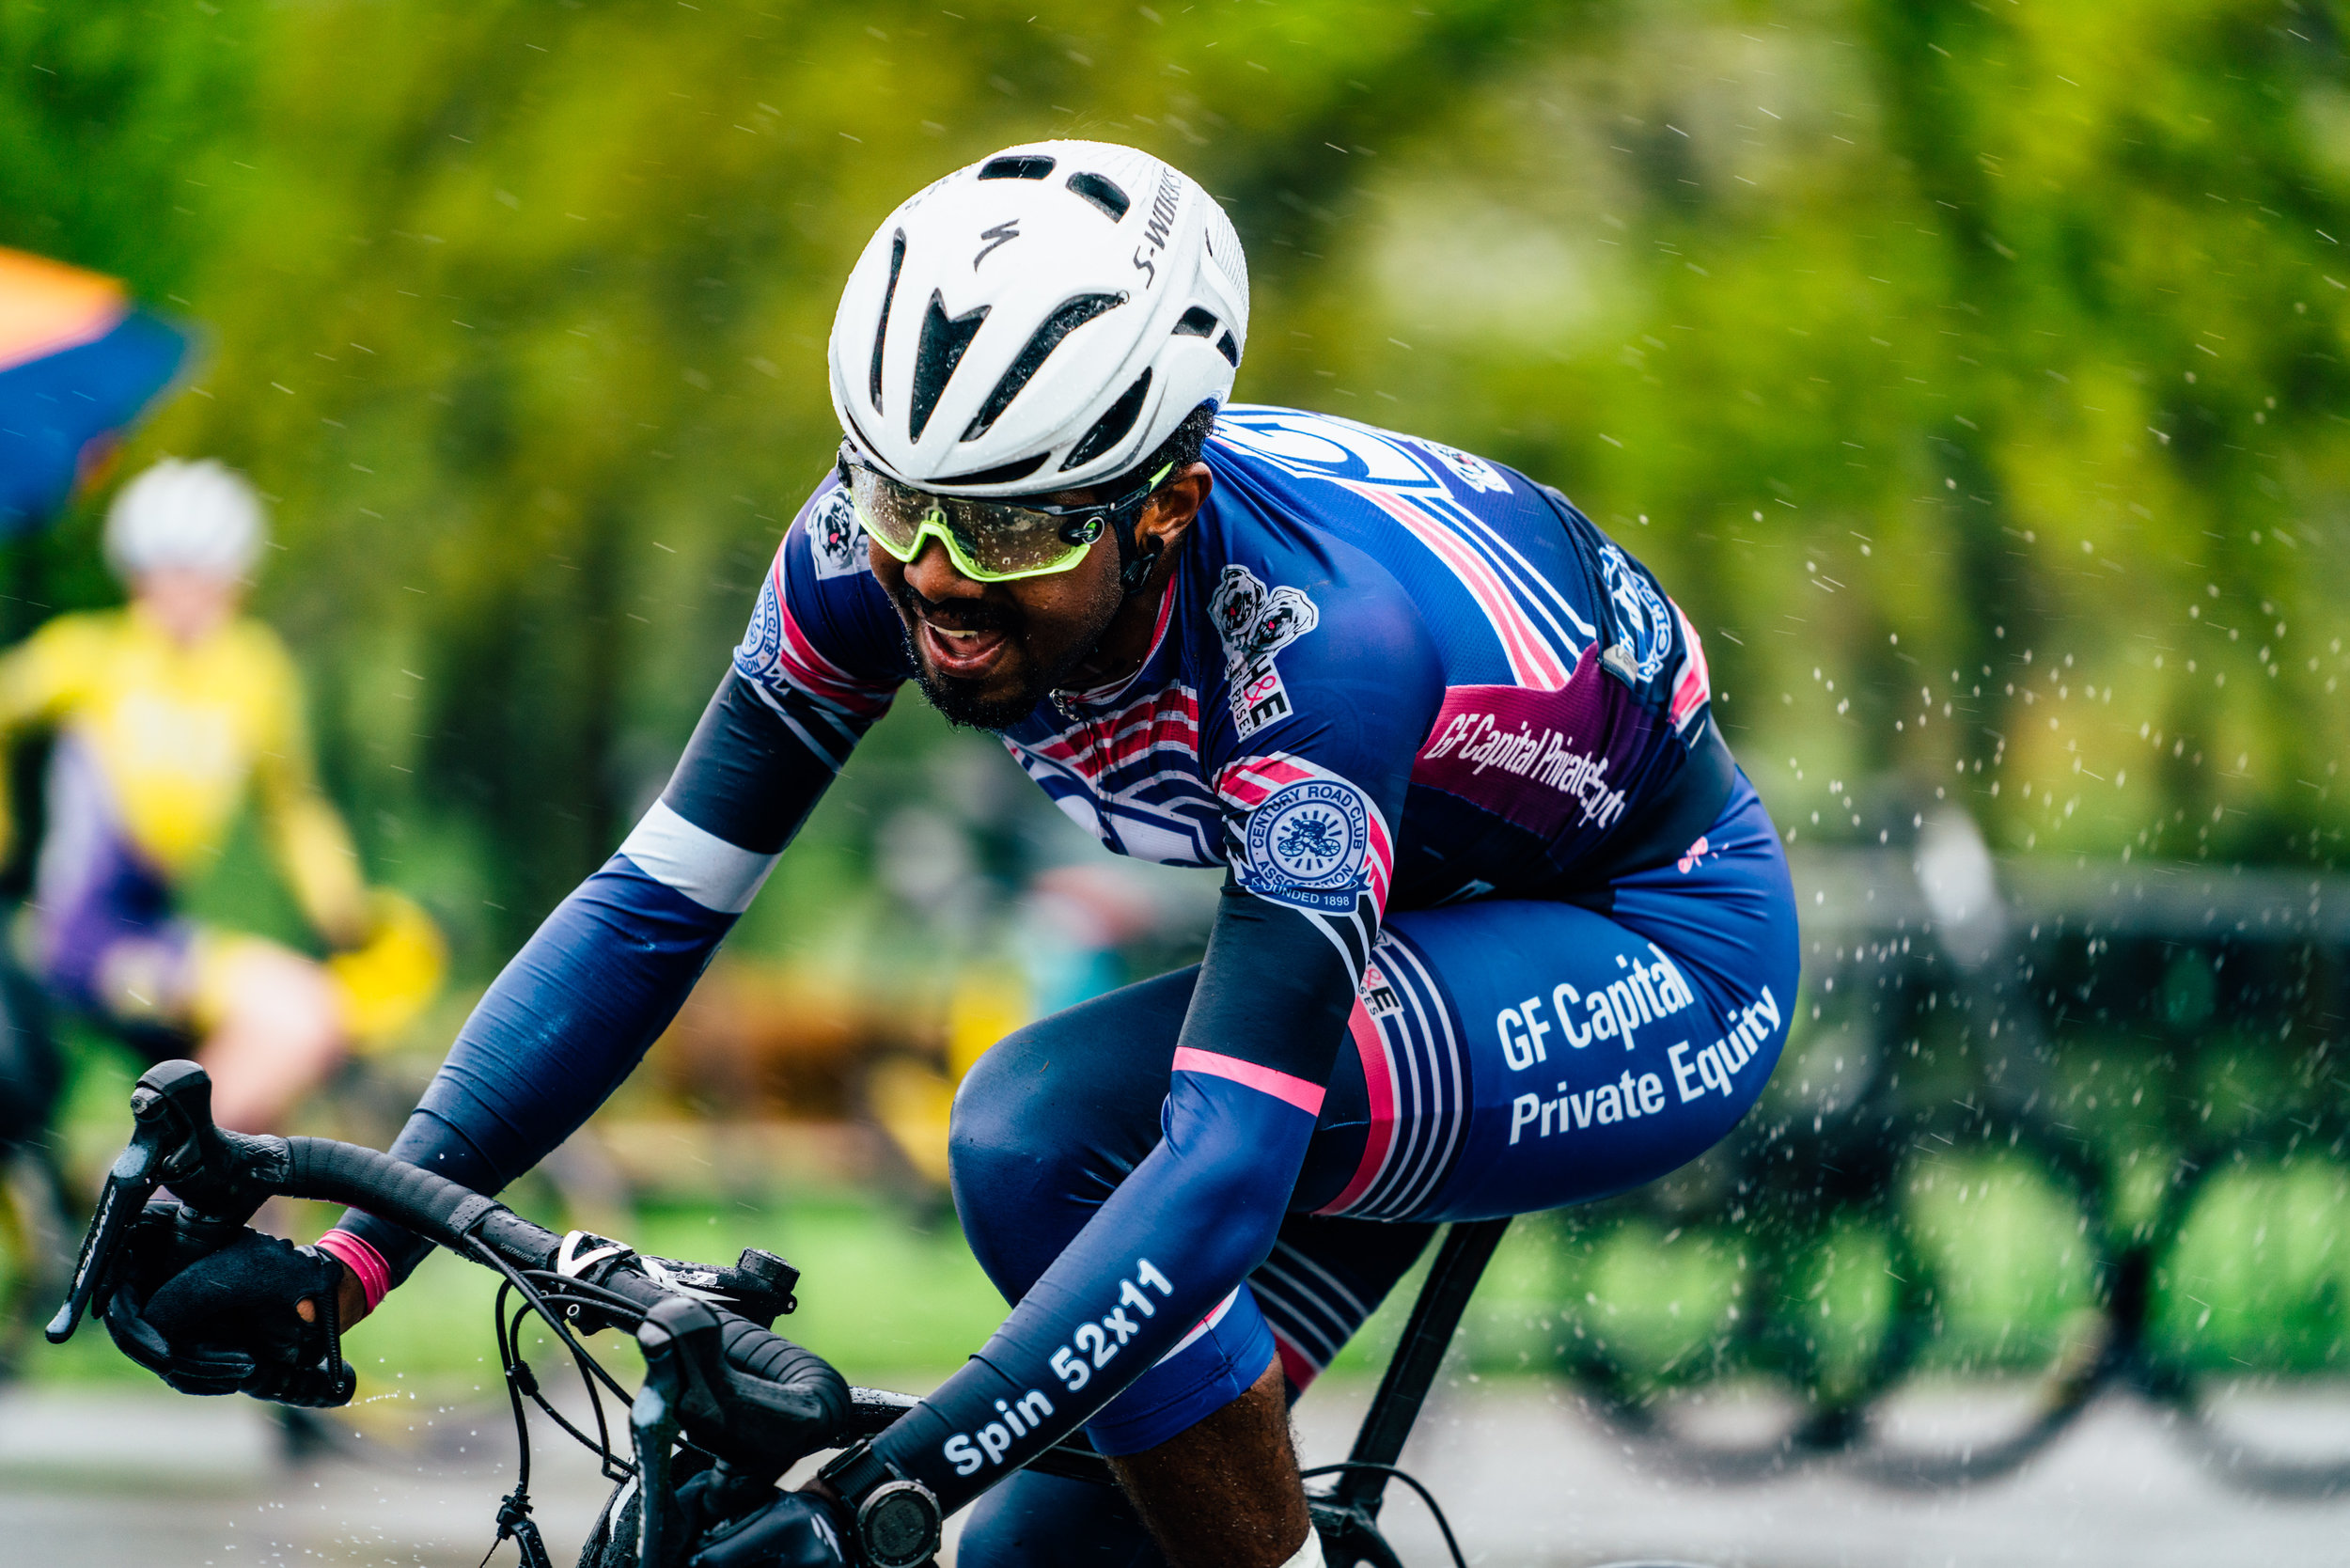 Photo Rhetoric - To Be Determined - Zach Koop Memorial Crit at Orchard Bearch-3010.jpg